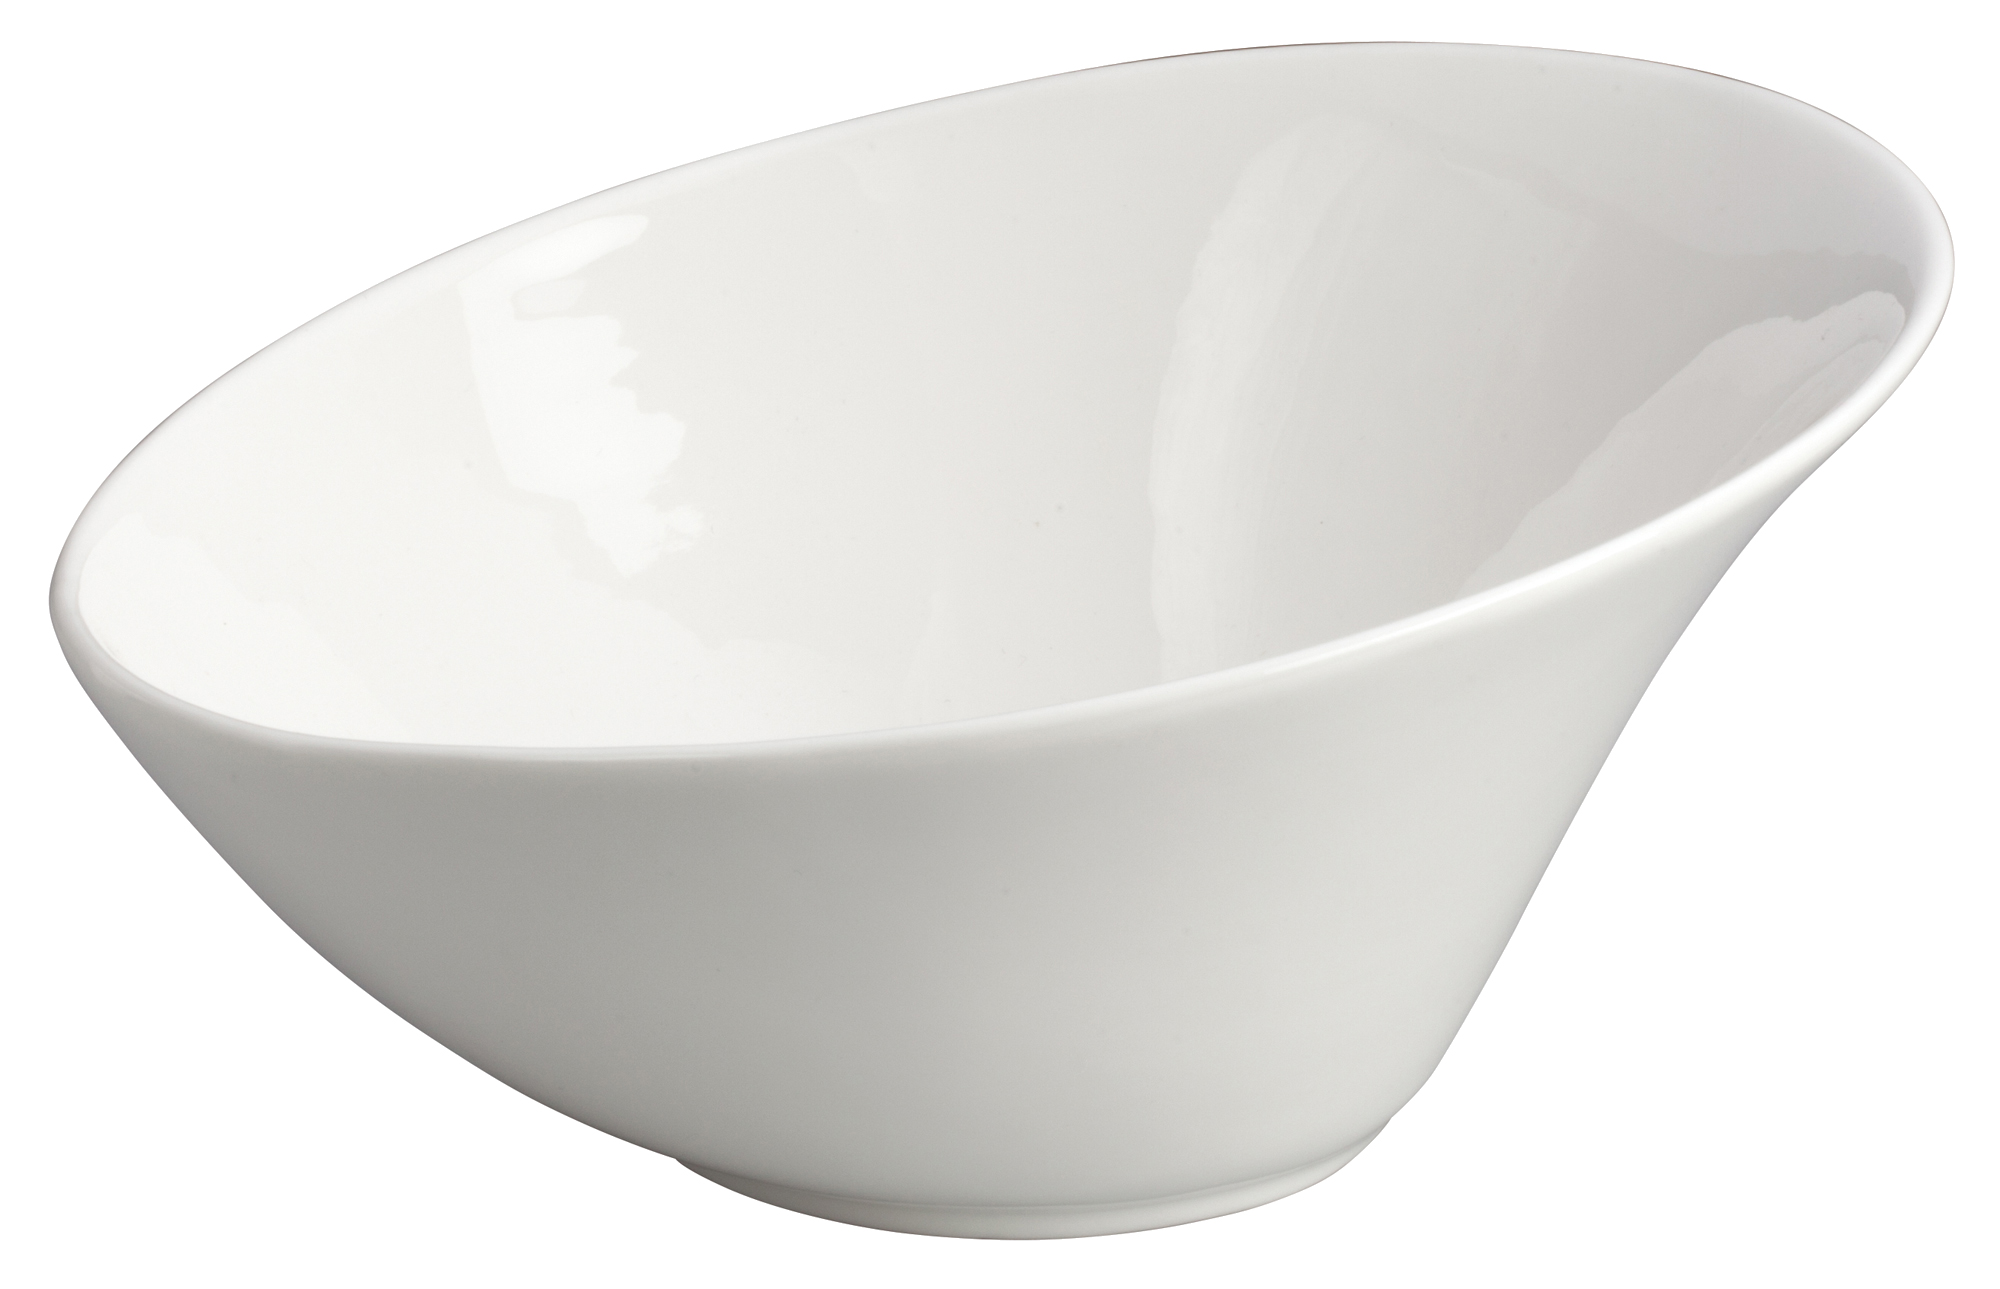 Winco WDP003-202 china, bowl, 17 - 32 oz